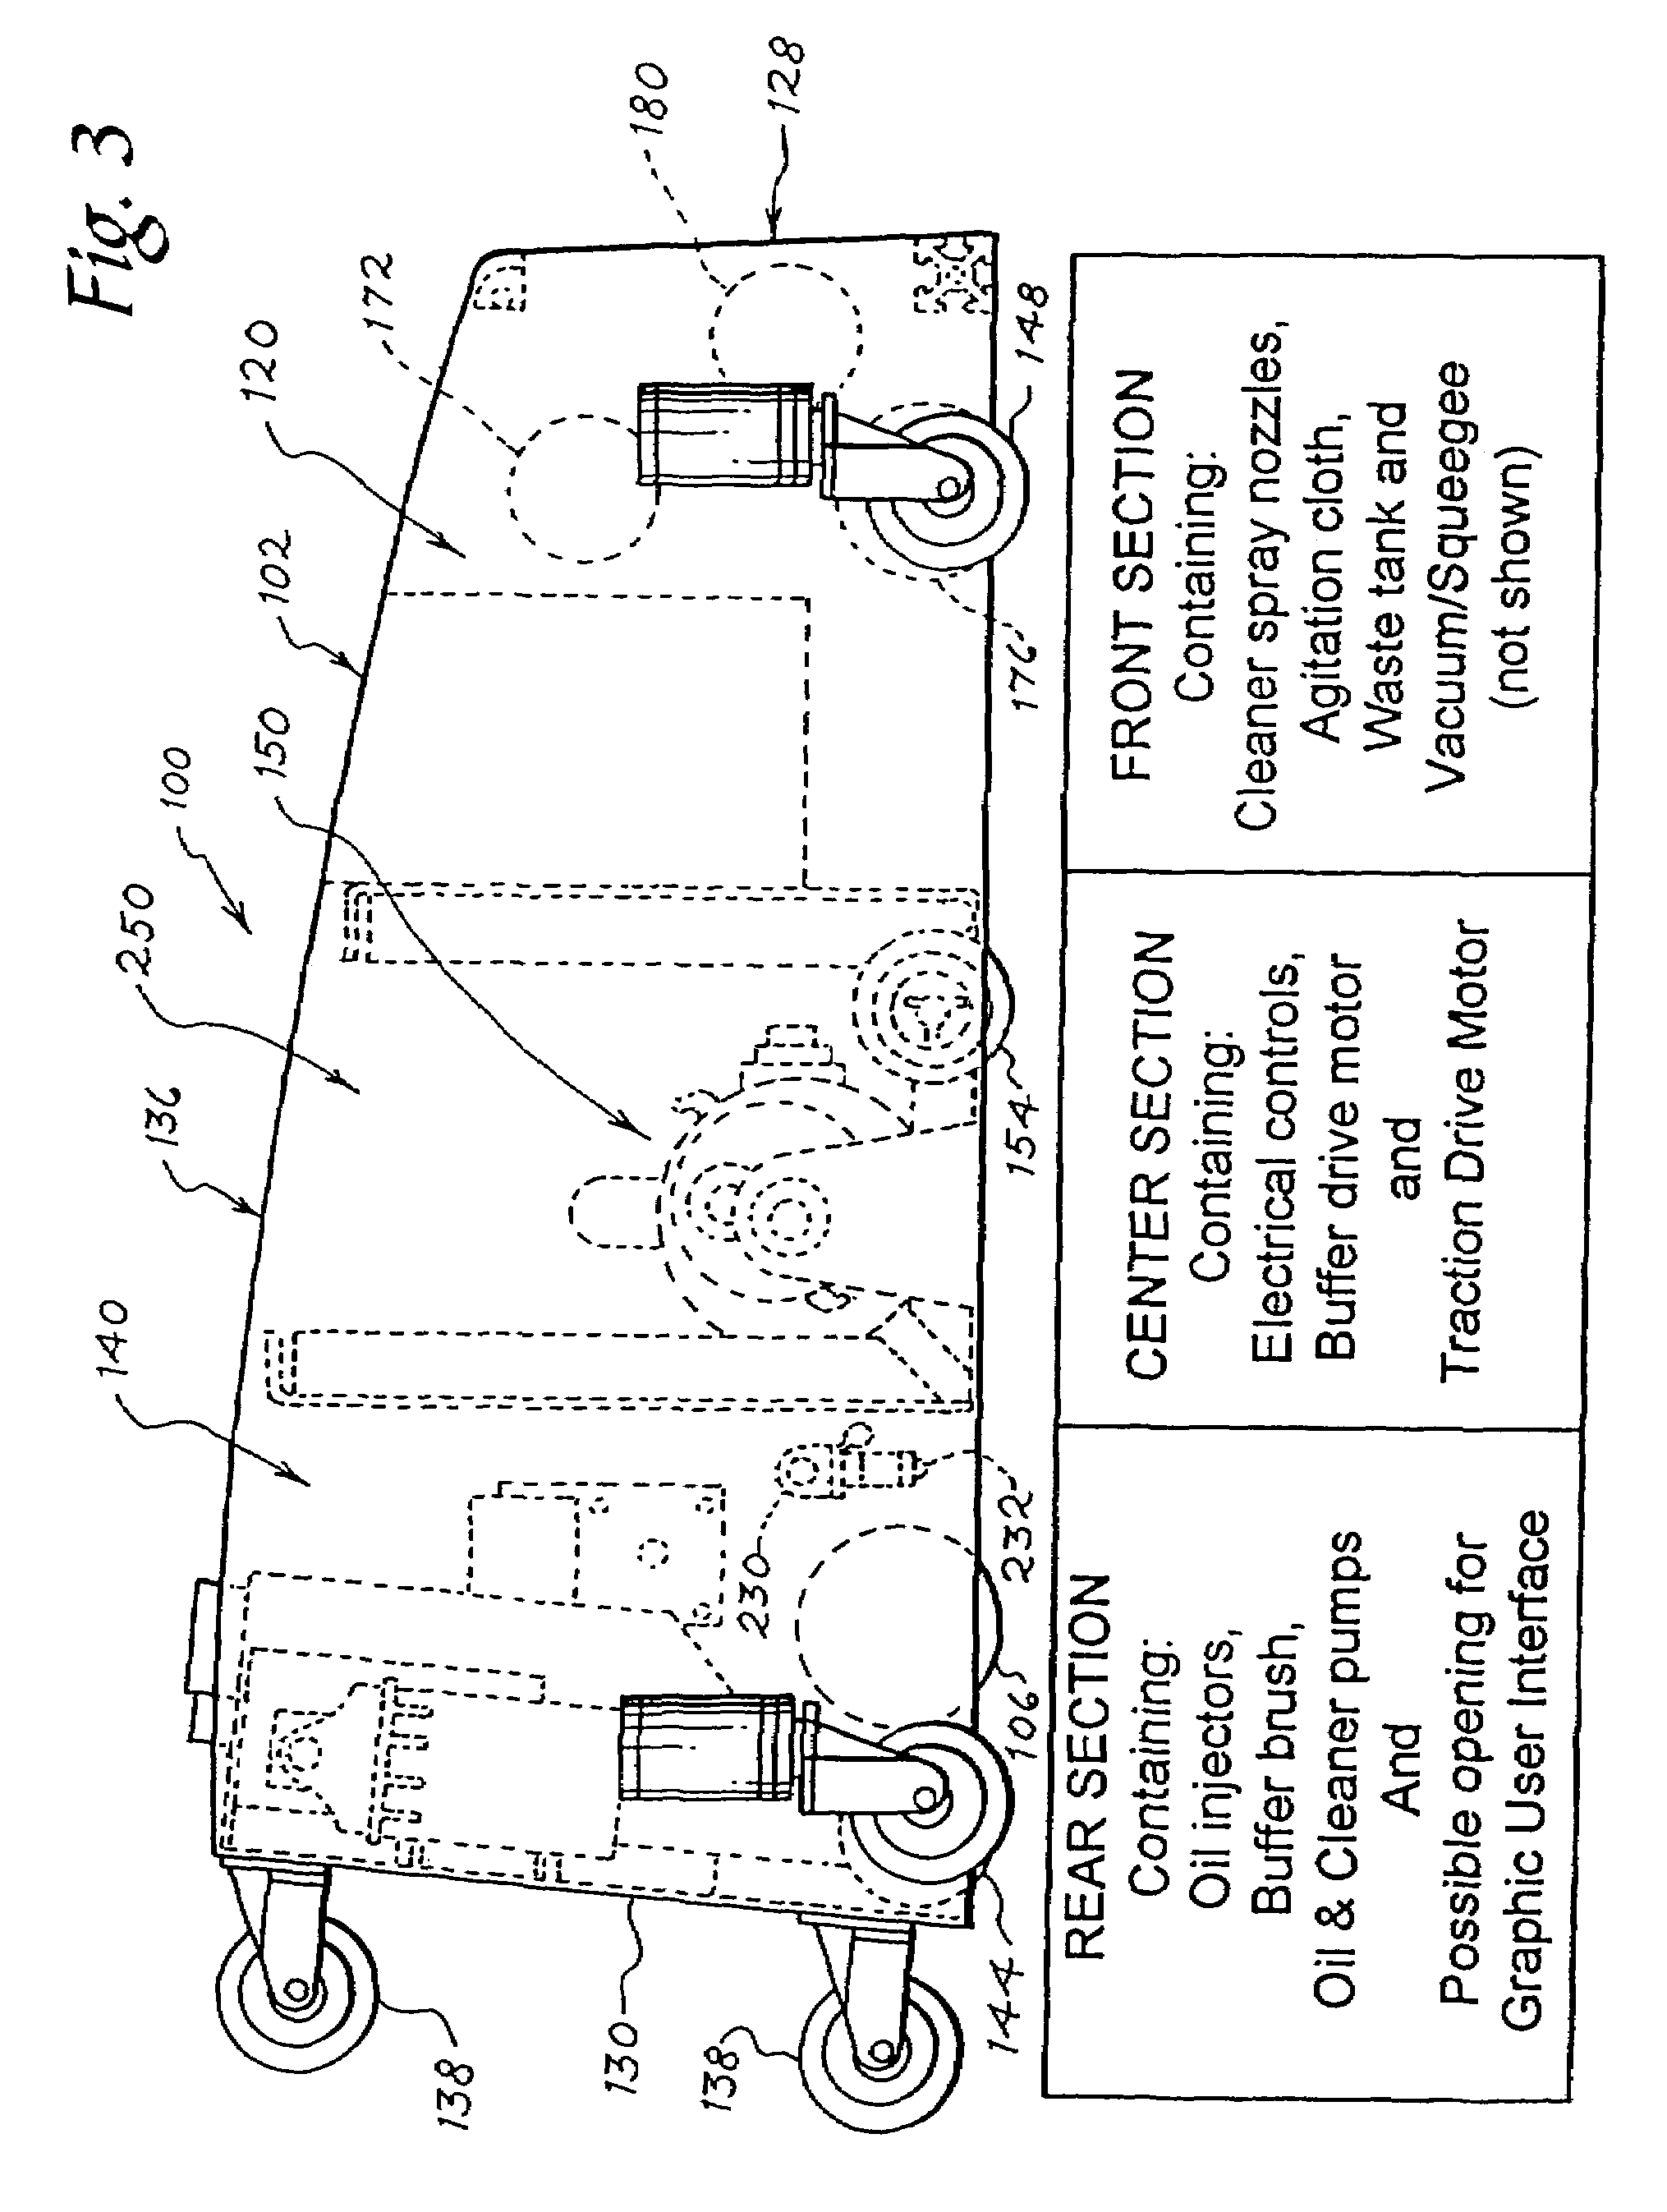 Patent Us7784147 Bowling Lane Conditioning Machine Google Patents Hydraulic Clutch System Diagram Furthermore Fuel Injector Rail Drawing